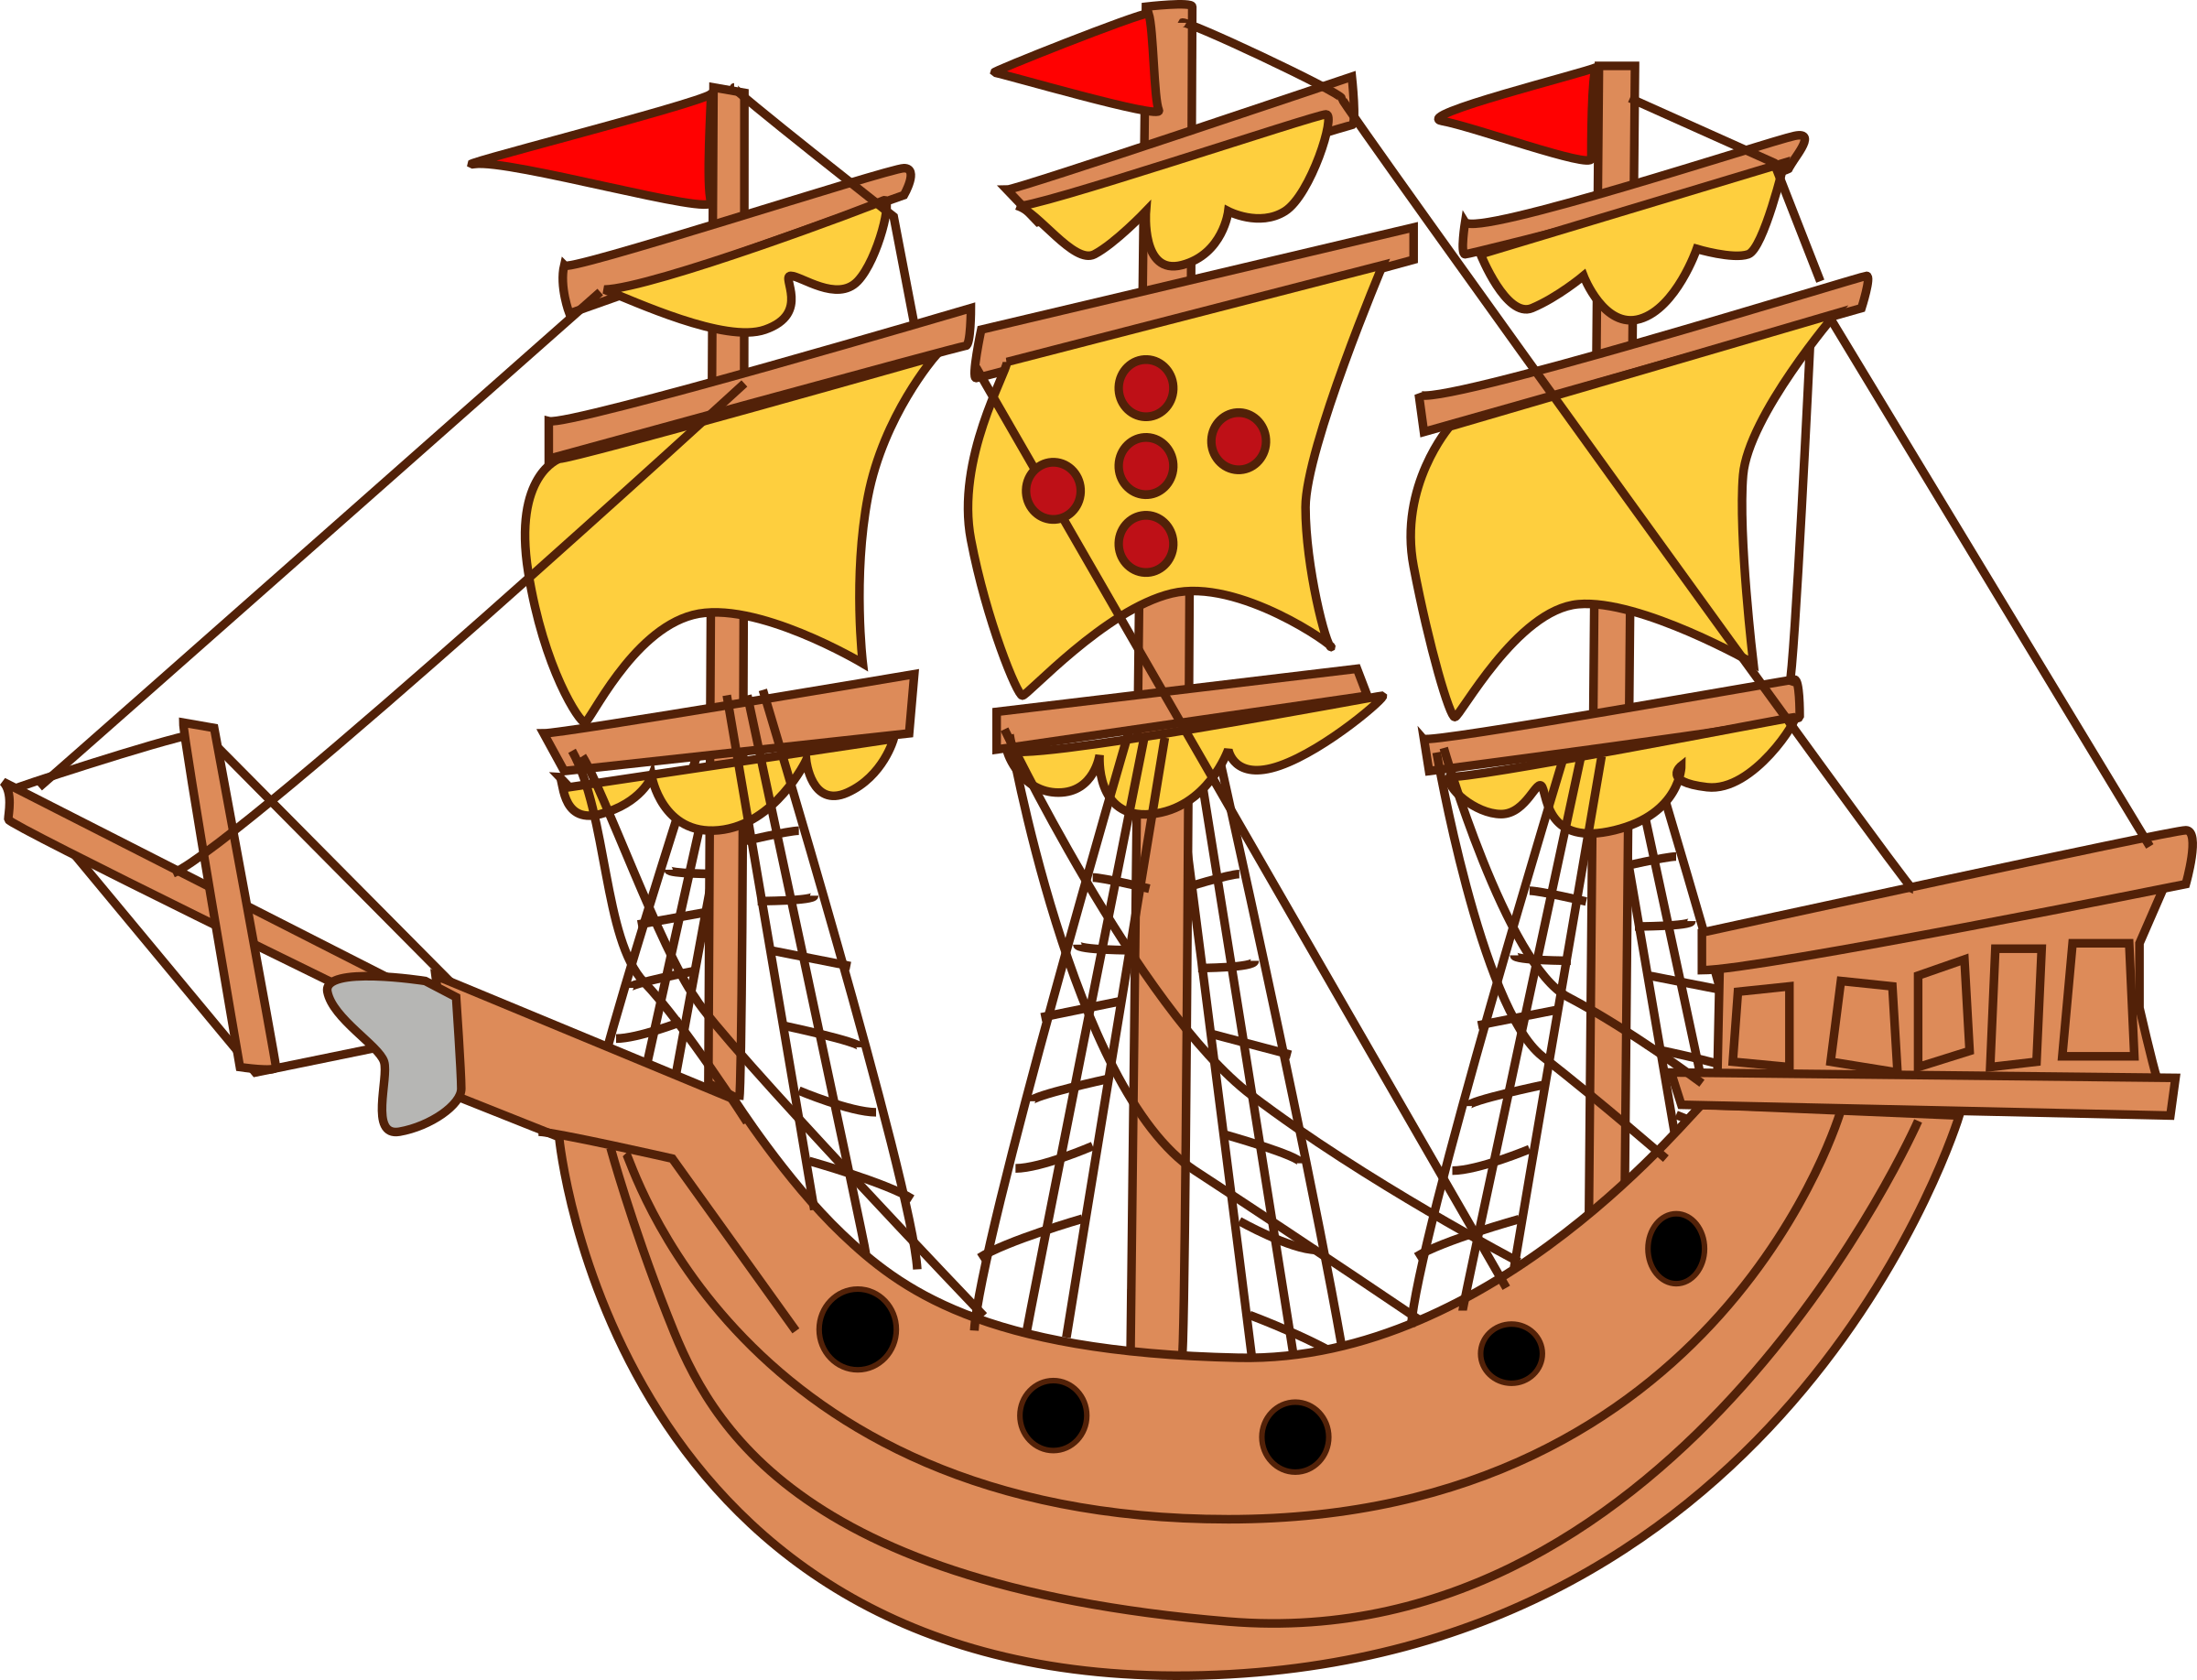 Big Sailing Ship Vector Clipart image - Free stock photo ...